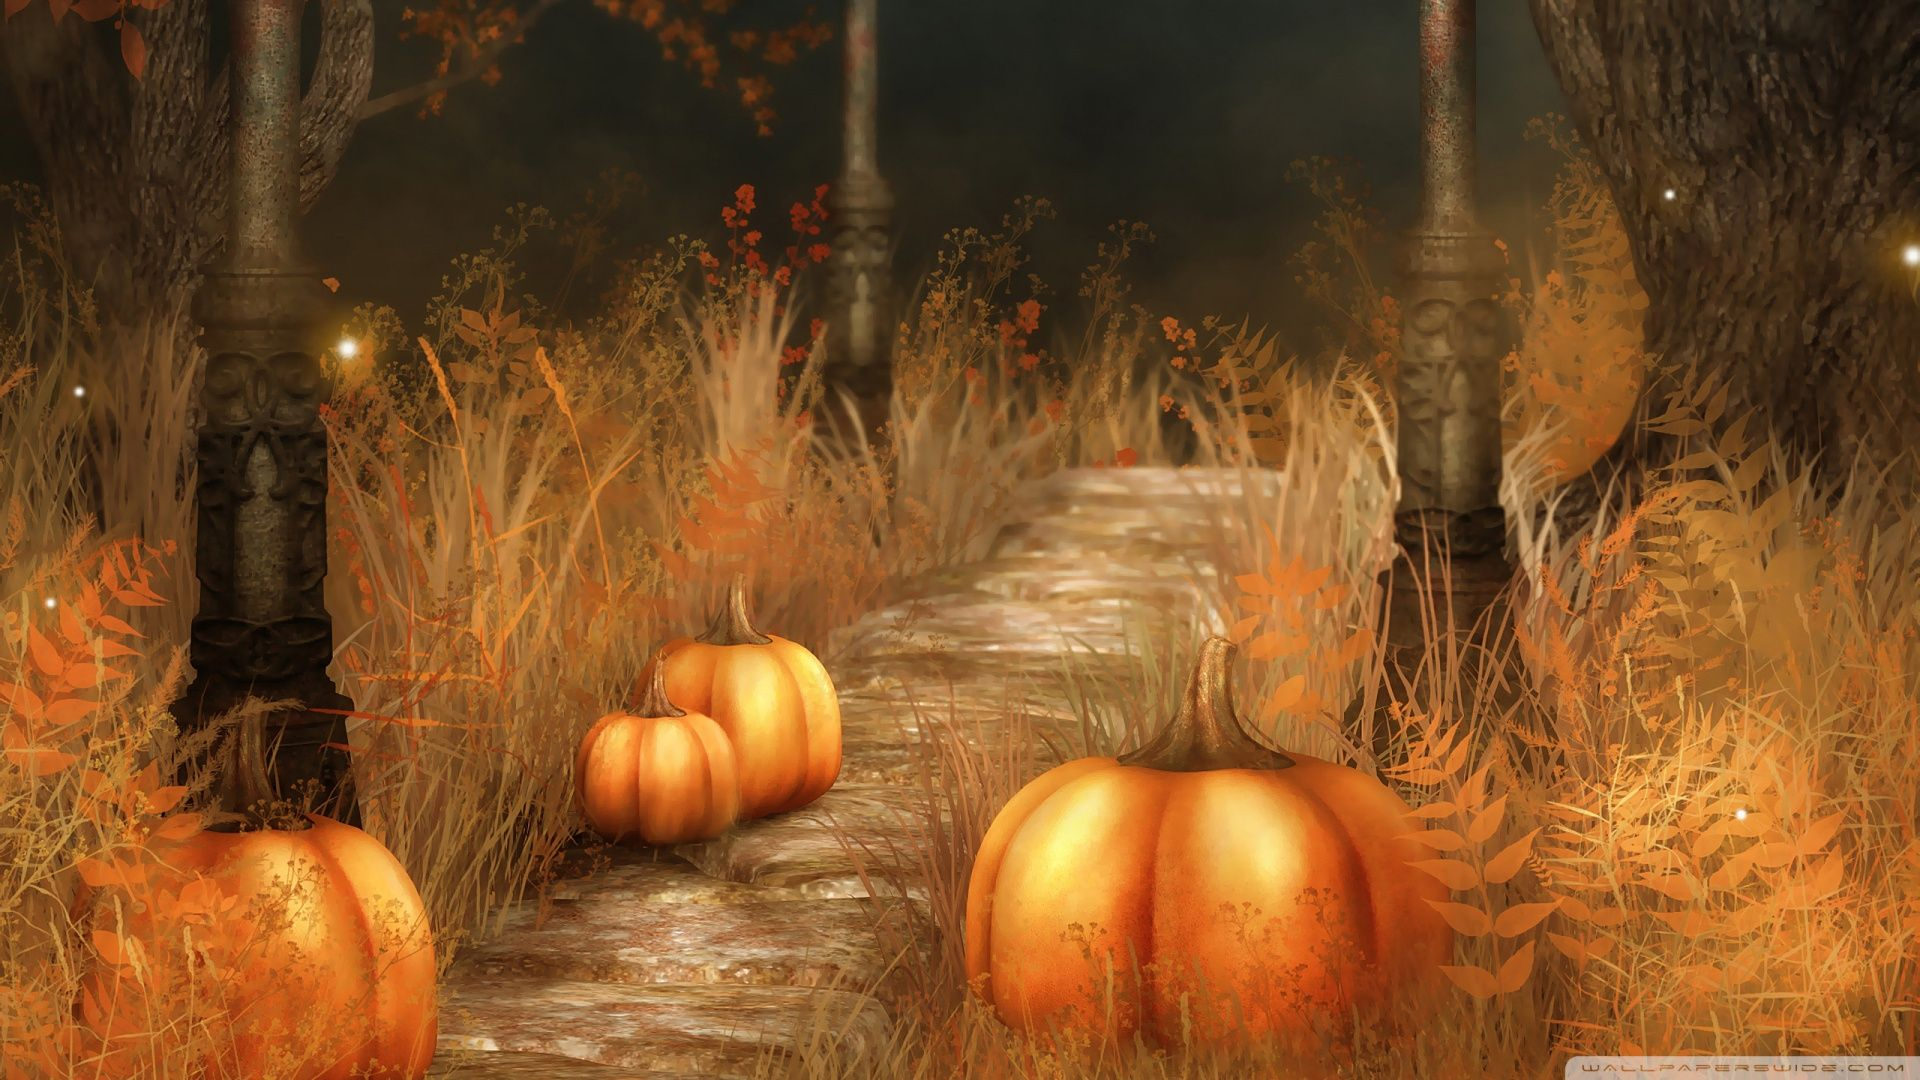 cute fall pumpkins wallpaper pumpkins halloween wallpaper free download